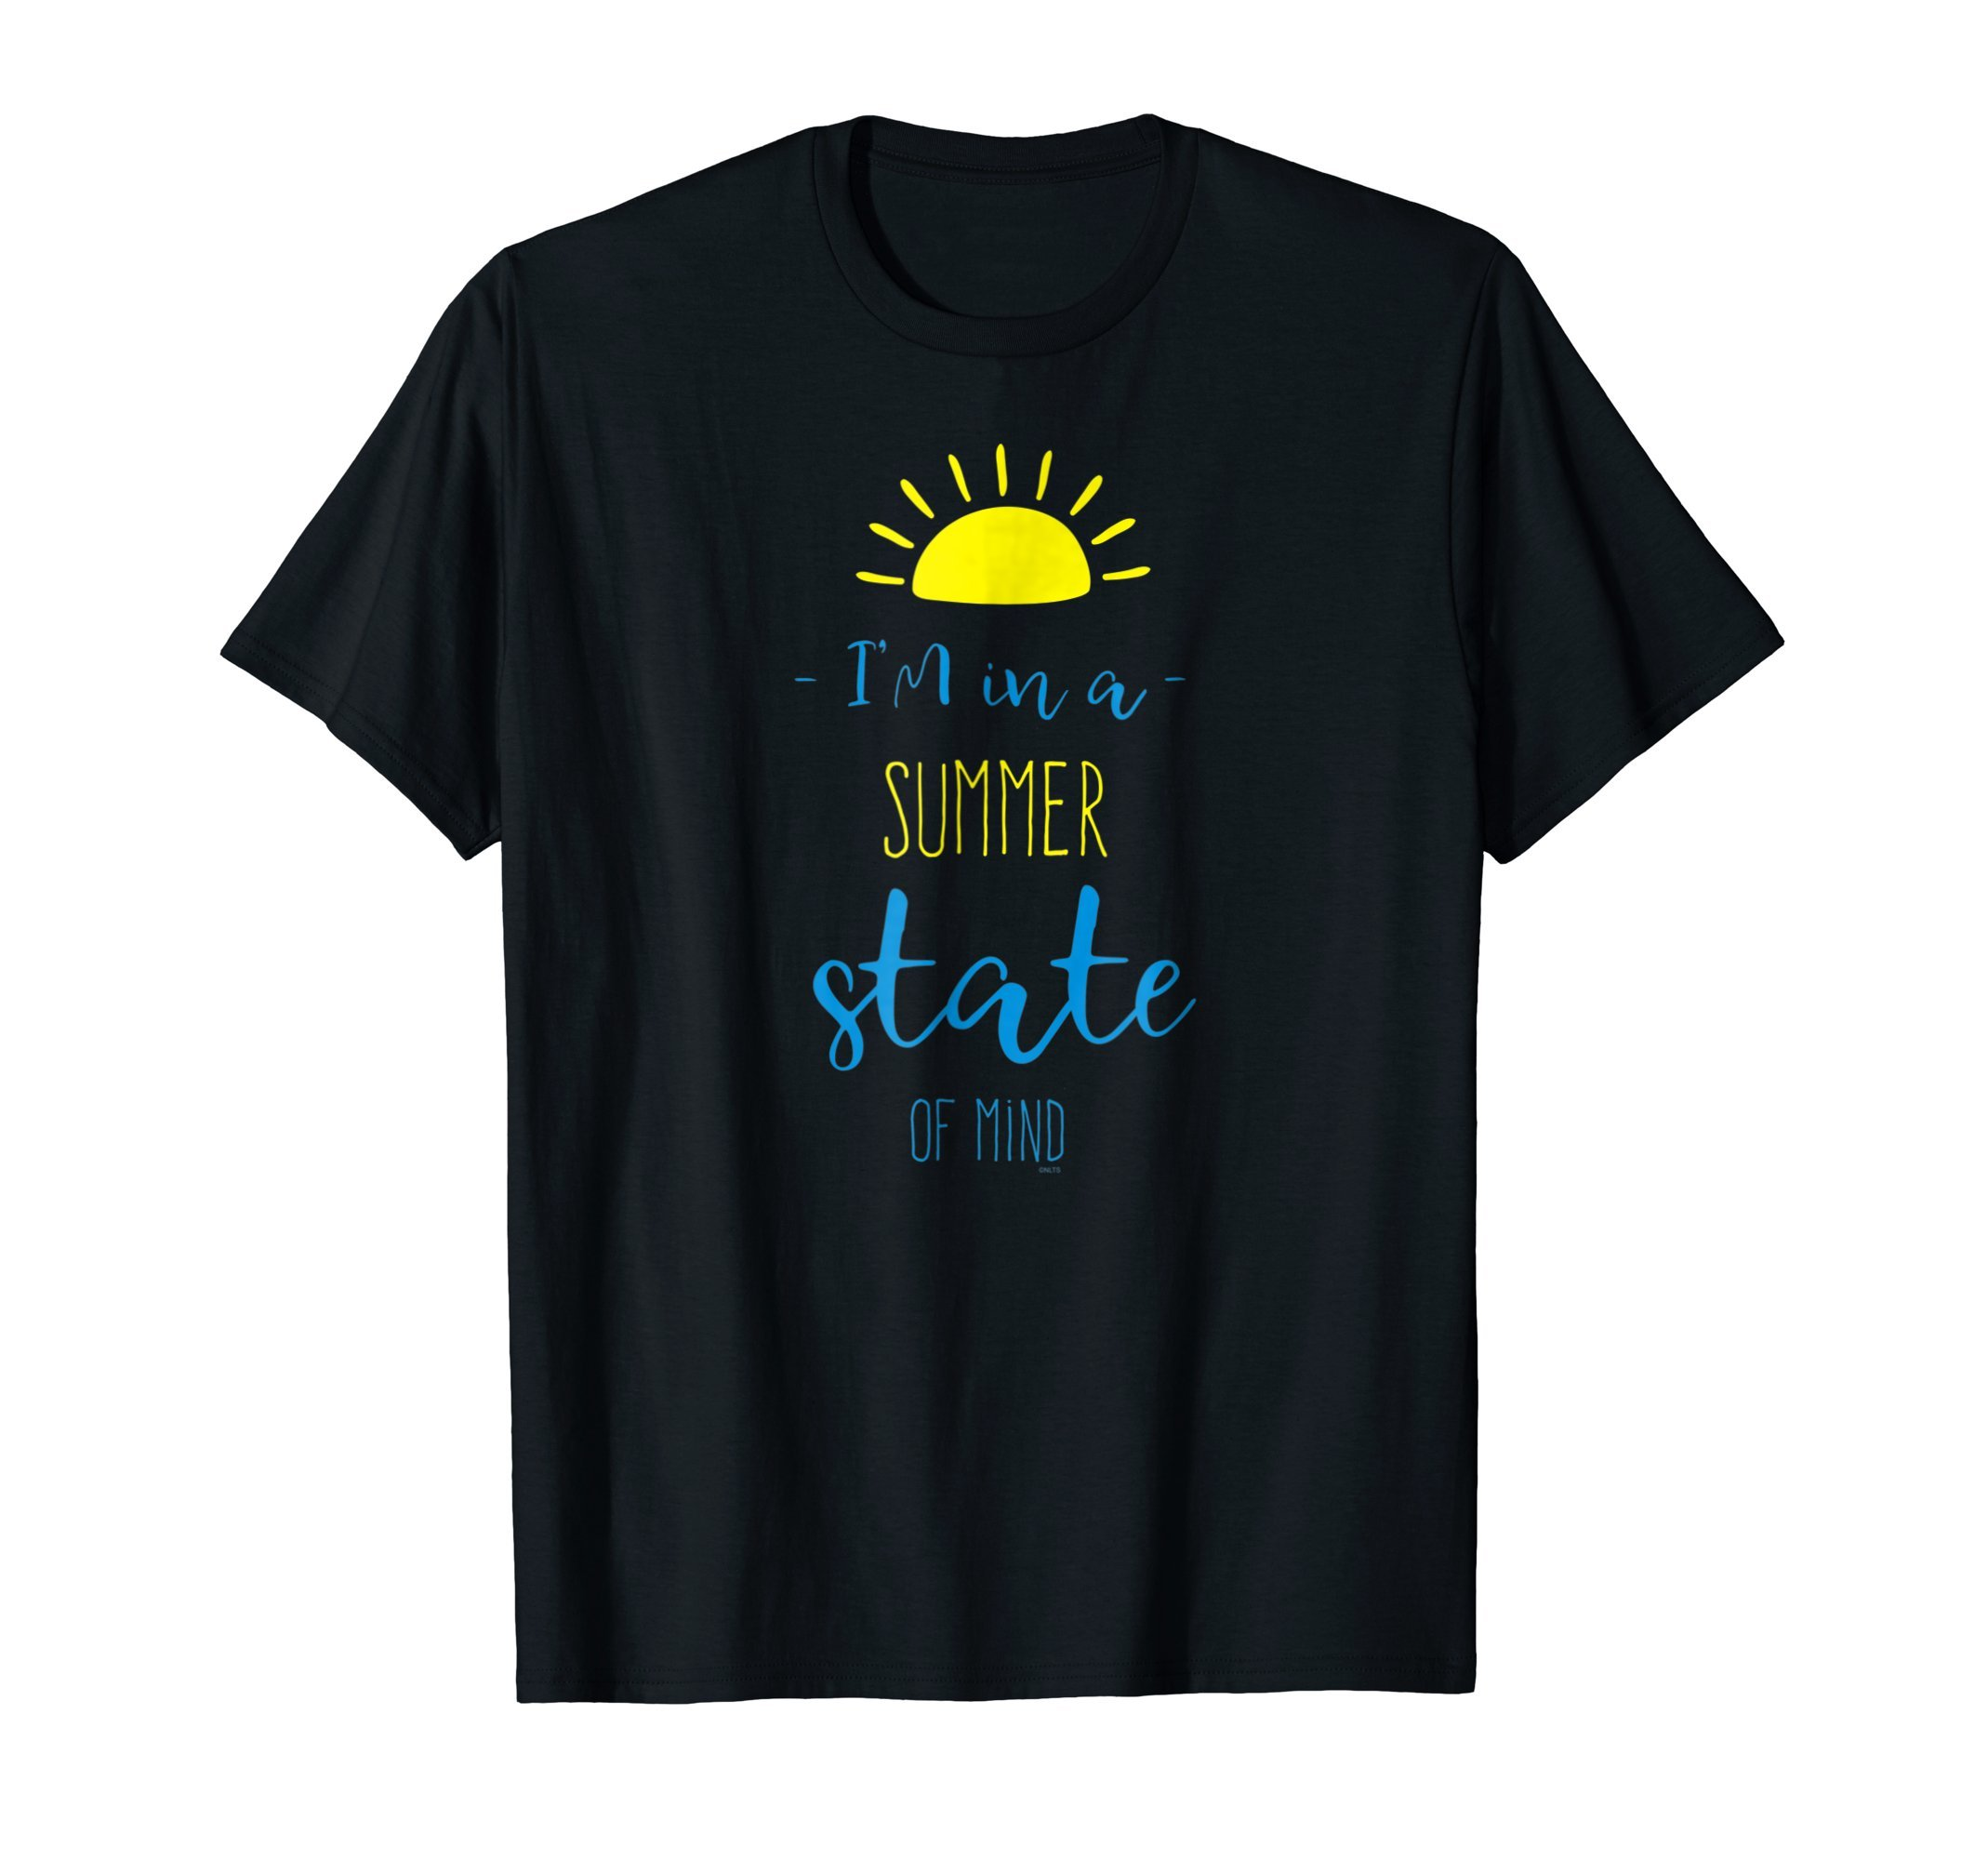 I-am-in-a-Summer-State-of-mind-T-Shirt-Gift-Tee-Shirt